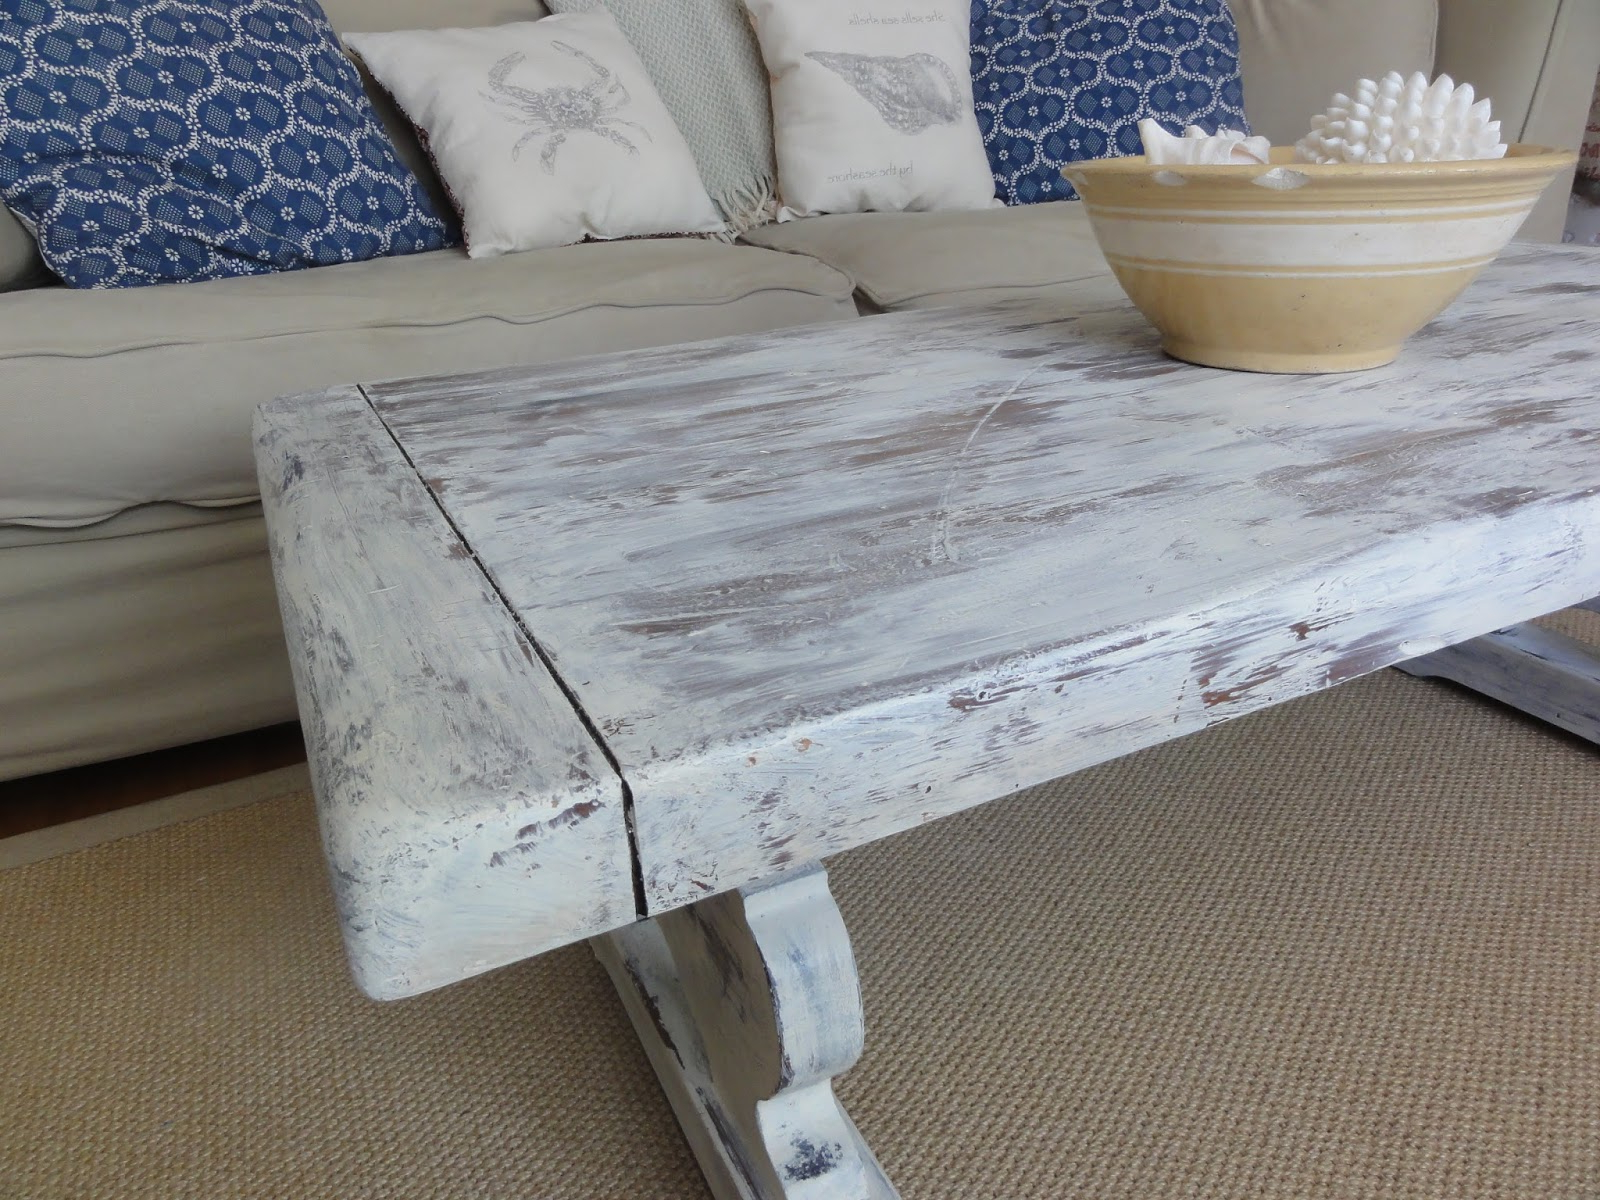 Probably Terrific Best Of The Best Rustic Teal End Table Pictures Throughout Preferred Limewash Coffee Tables (Gallery 11 of 20)